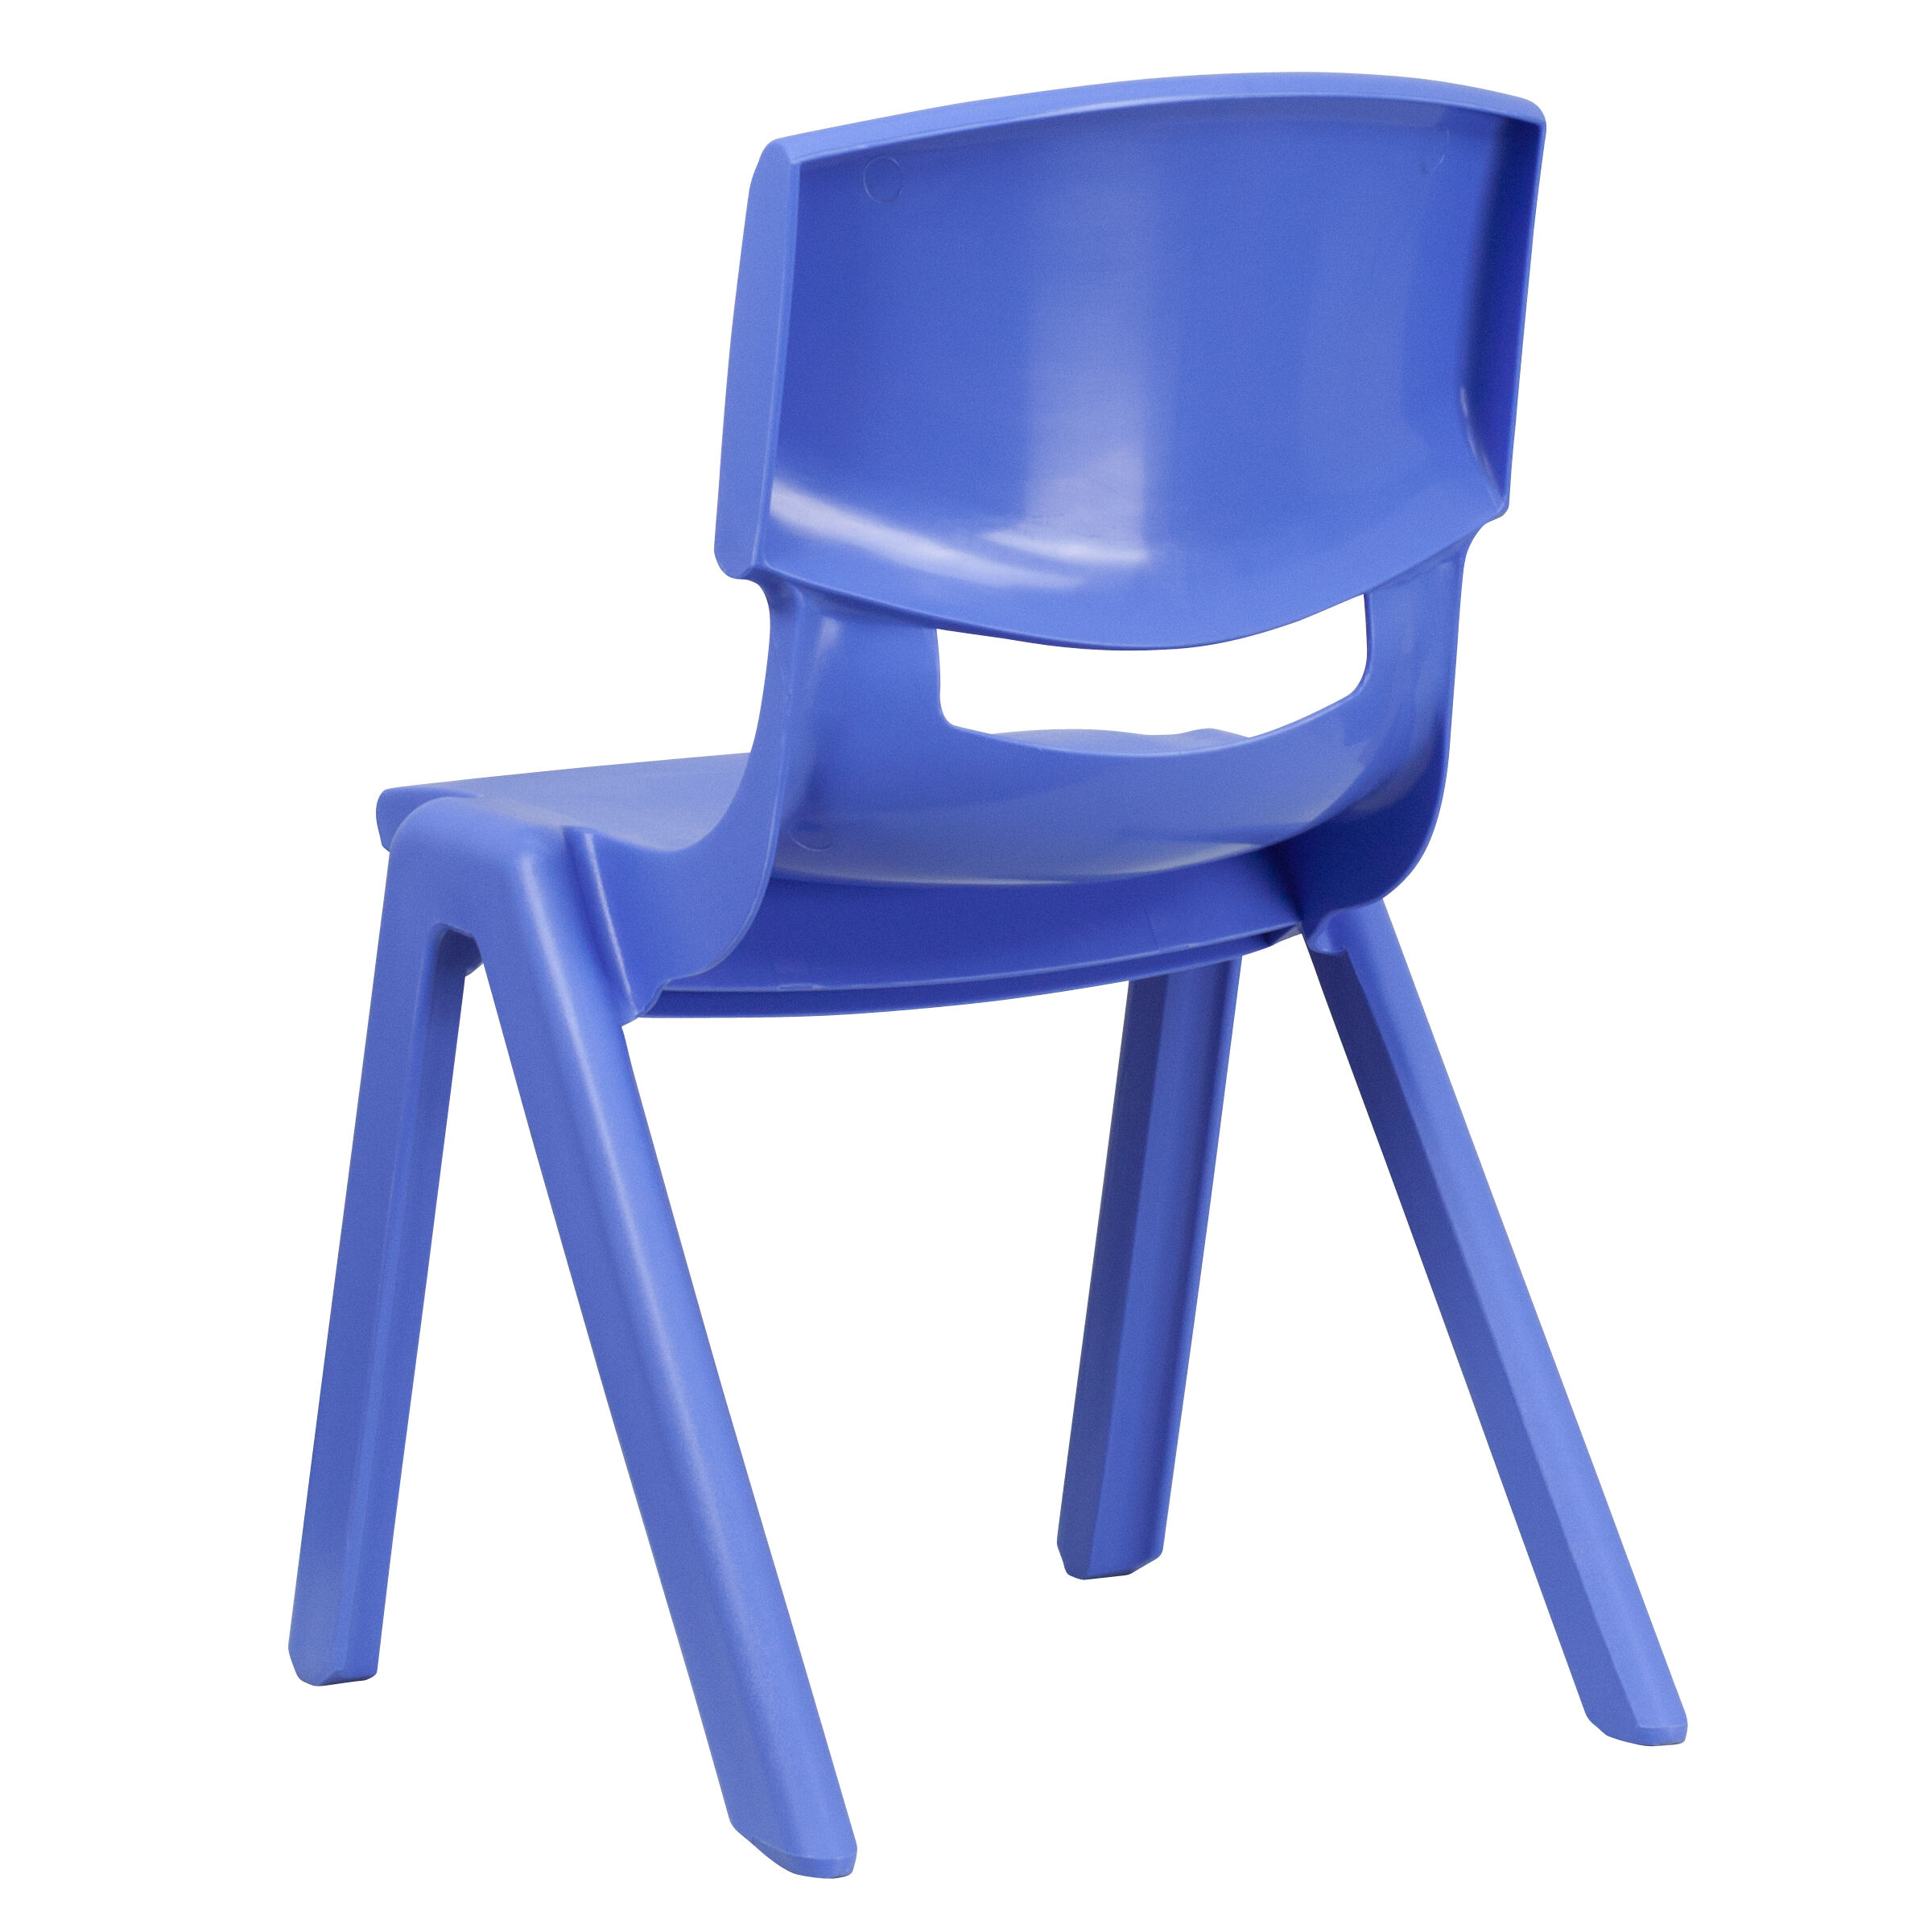 target blue chair covers for weddings uk plastic stack yu ycx 005 gg